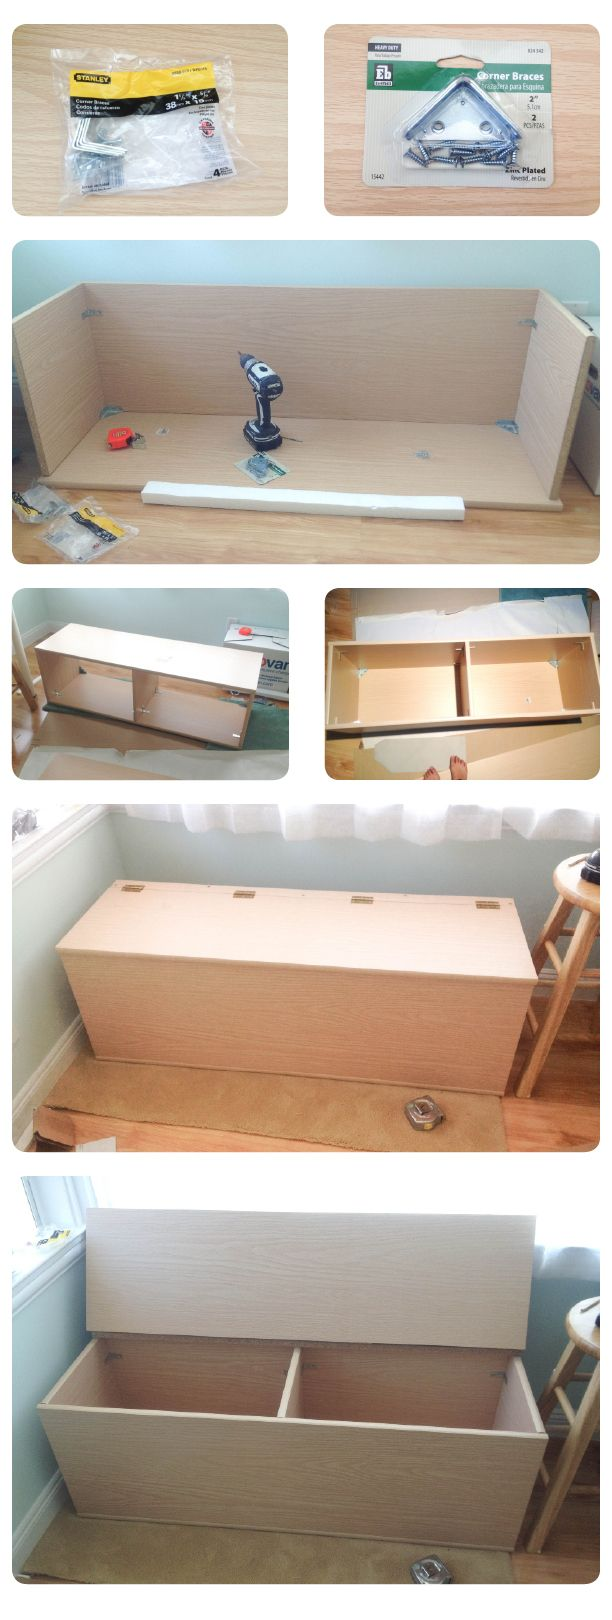 Wohnungsideen The Making Of : Storage Bench | Wohnungsideen | Diy